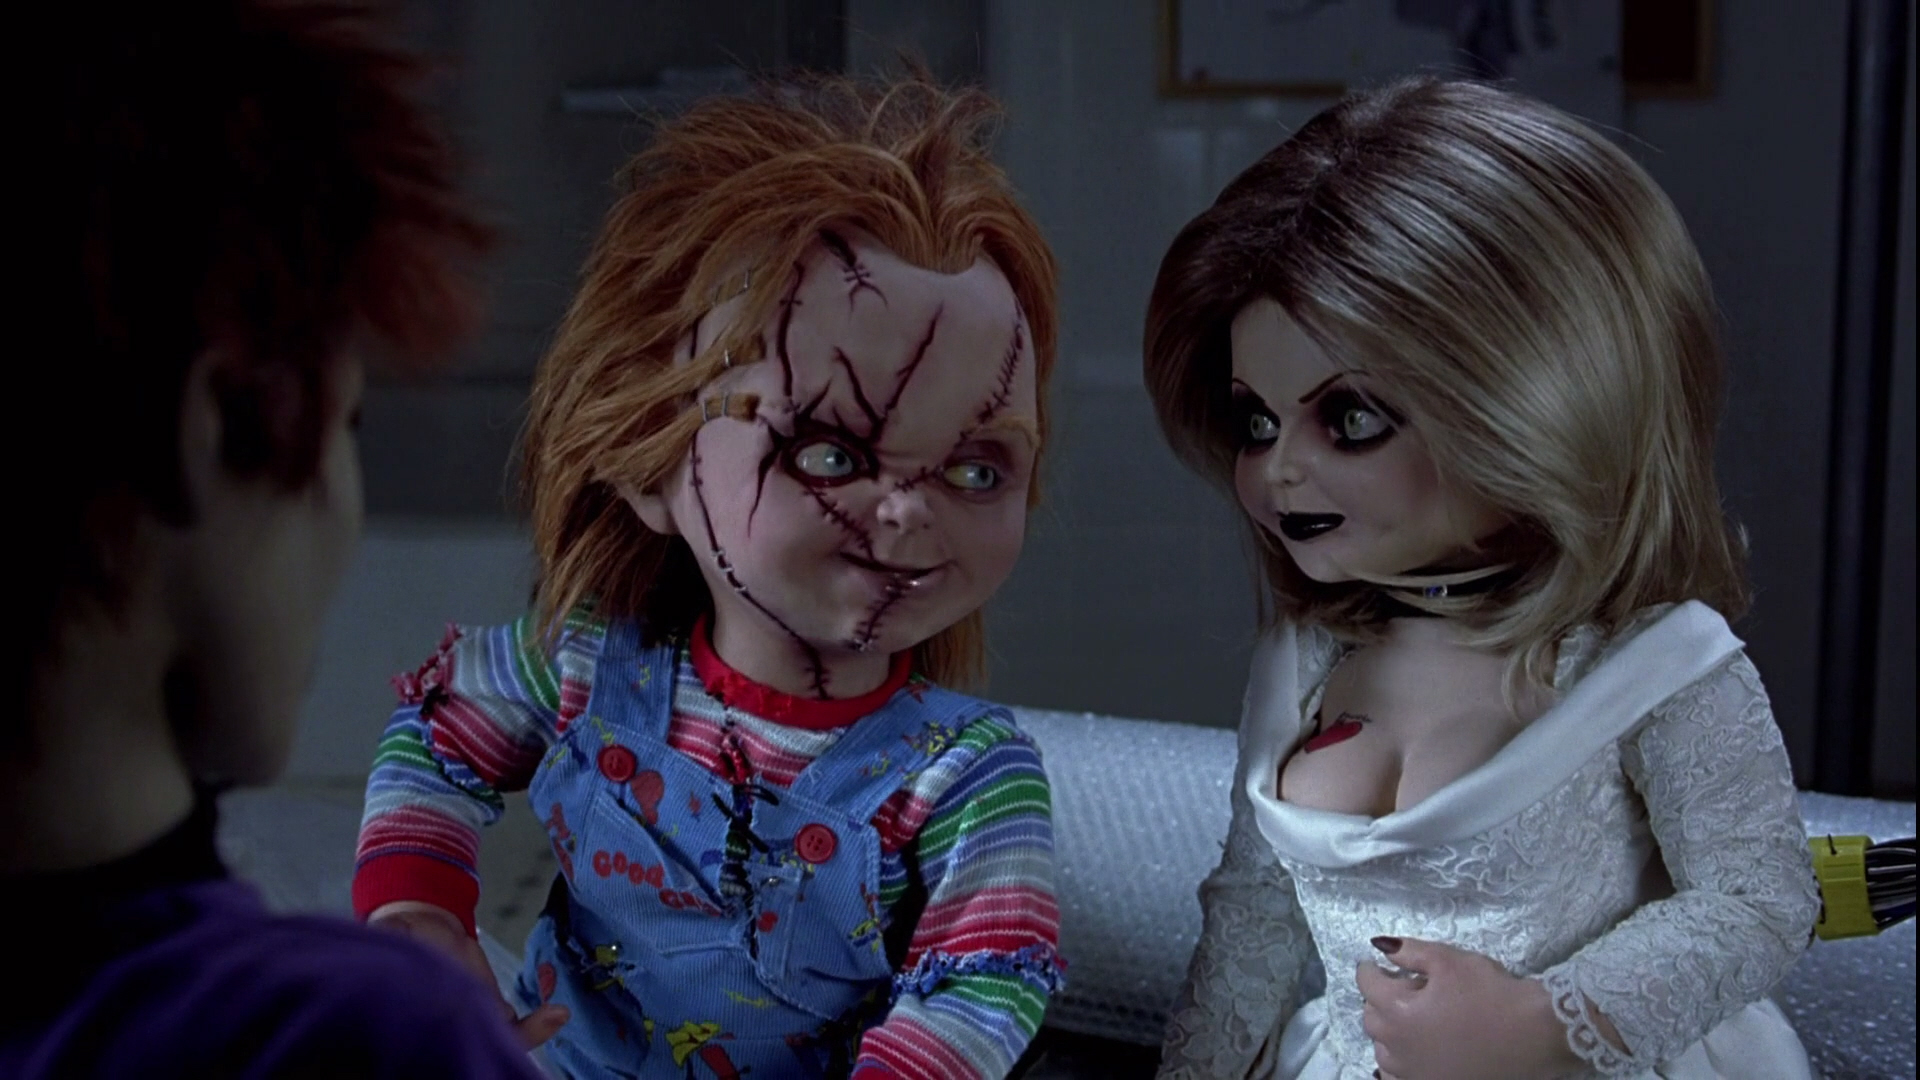 Pin Chucky Tiffany Childs Play